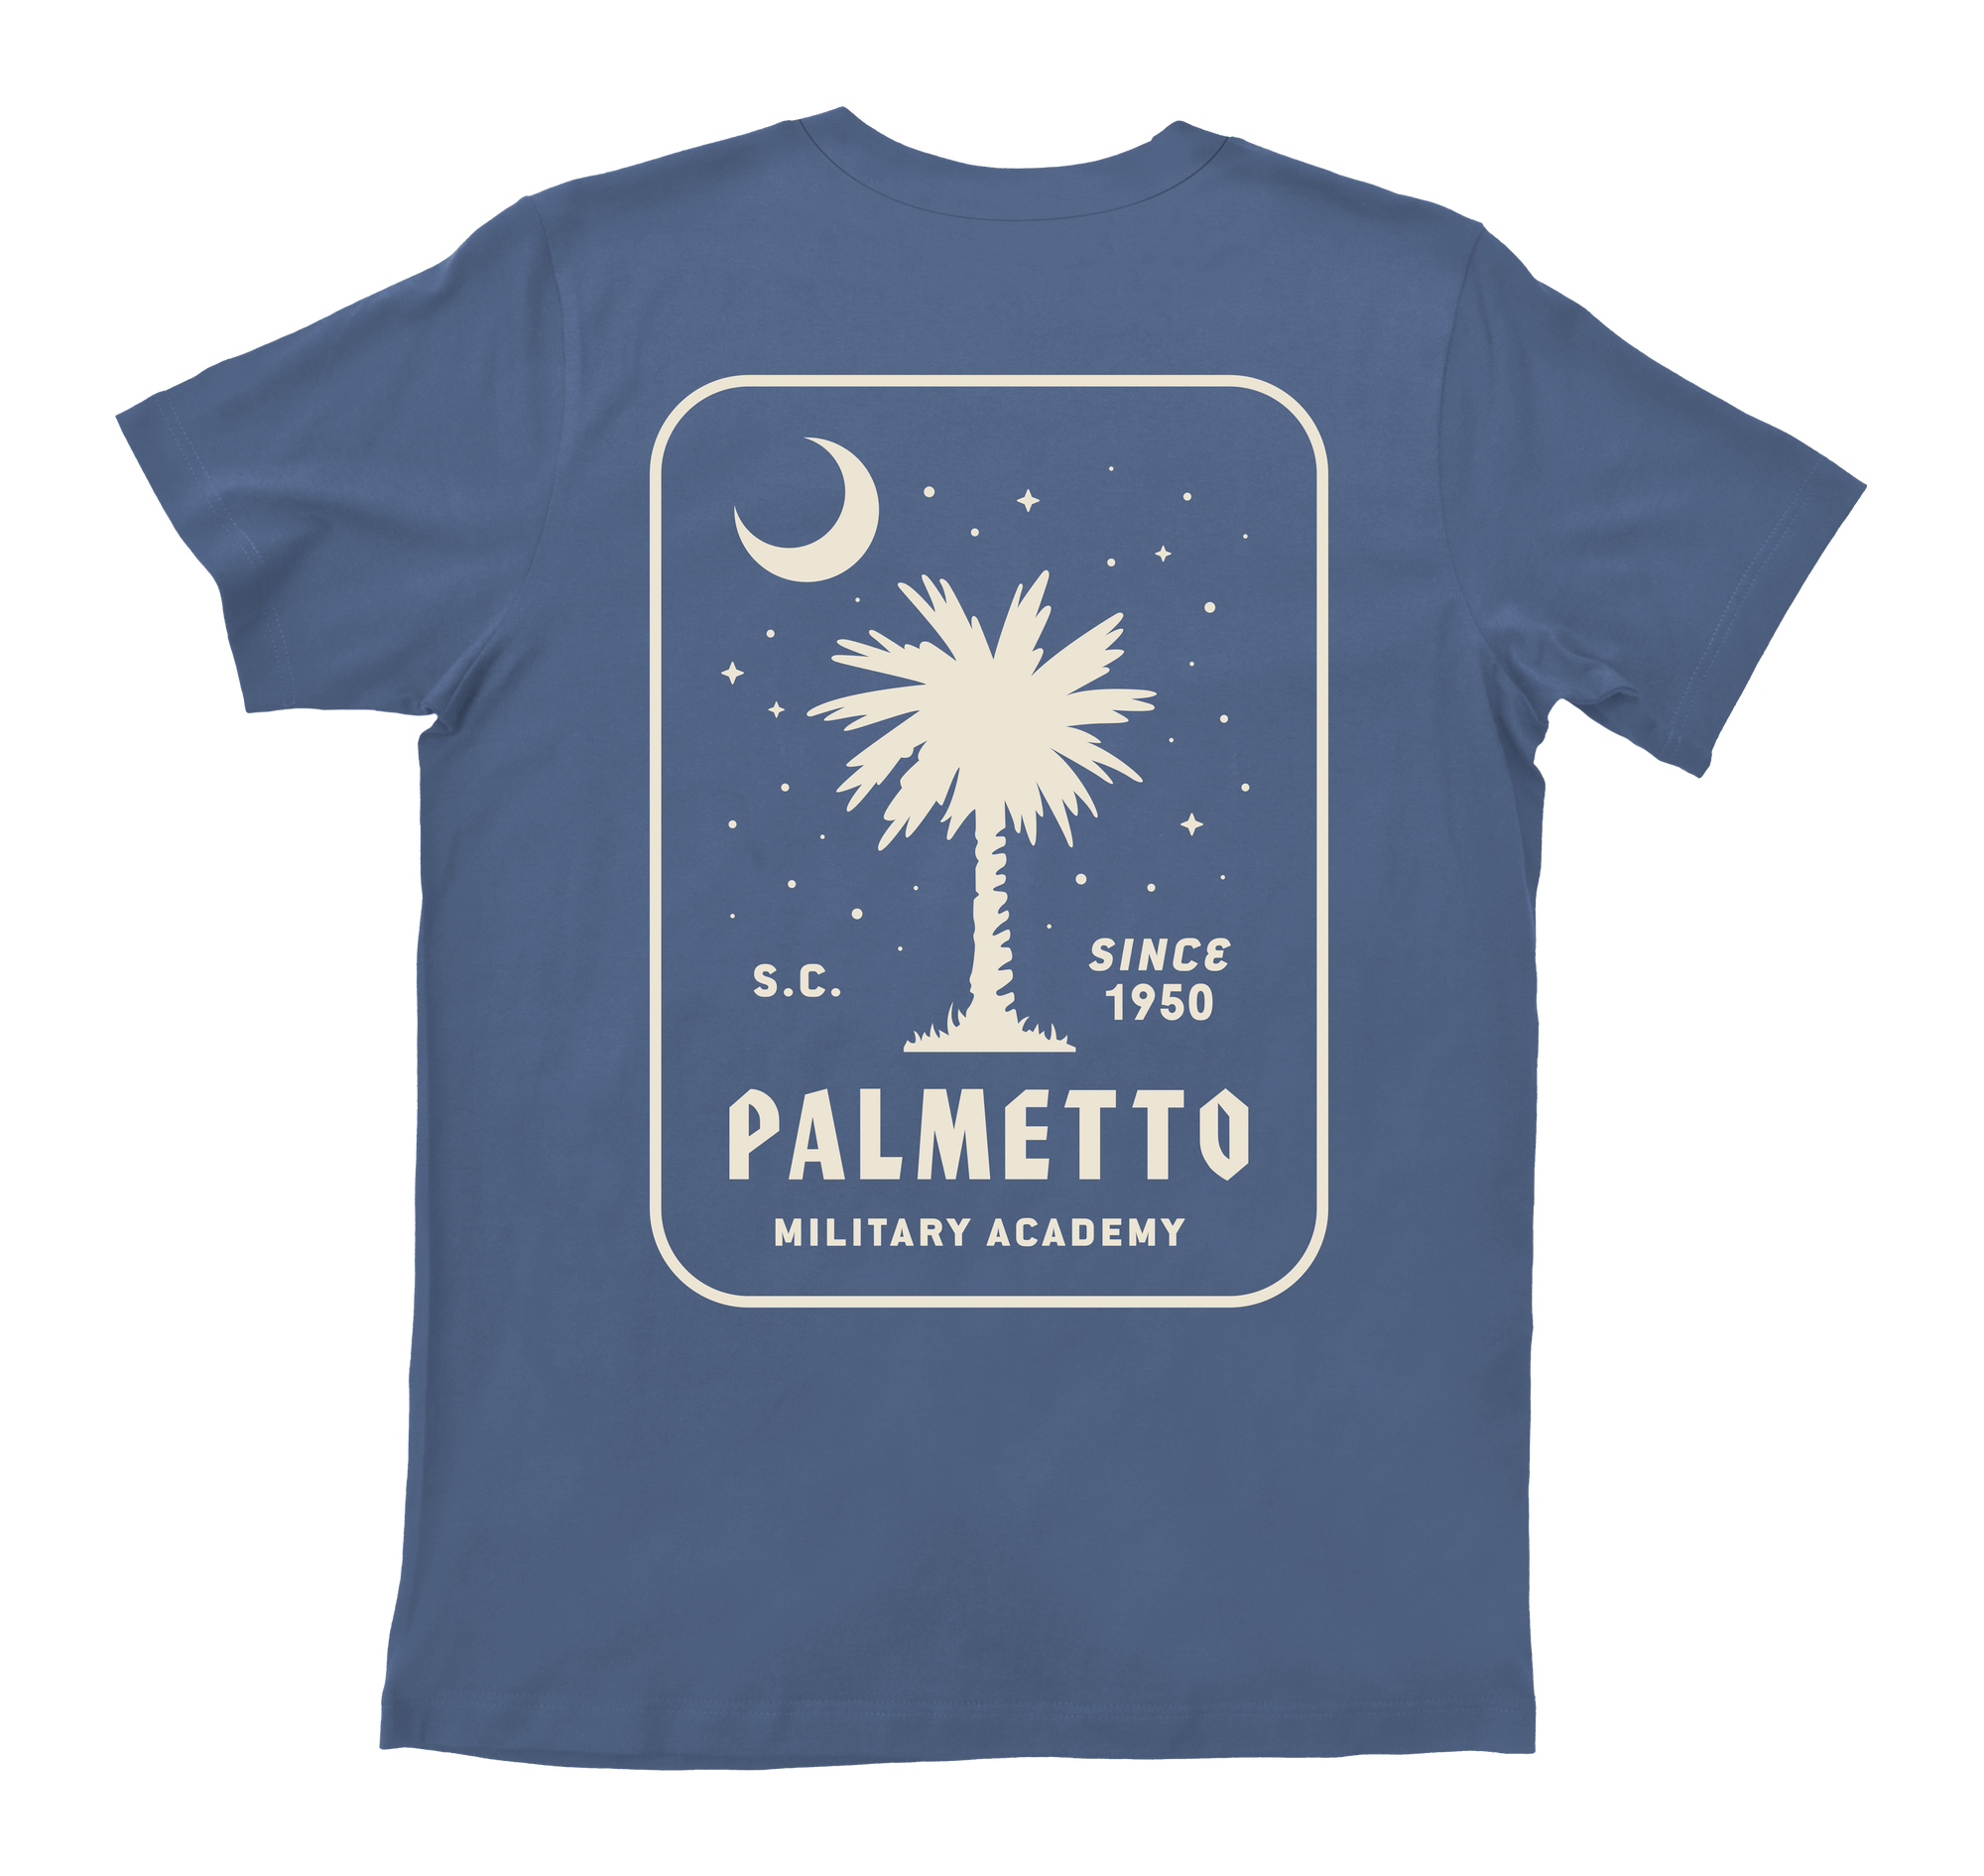 palmetto military academy t-shirt - back